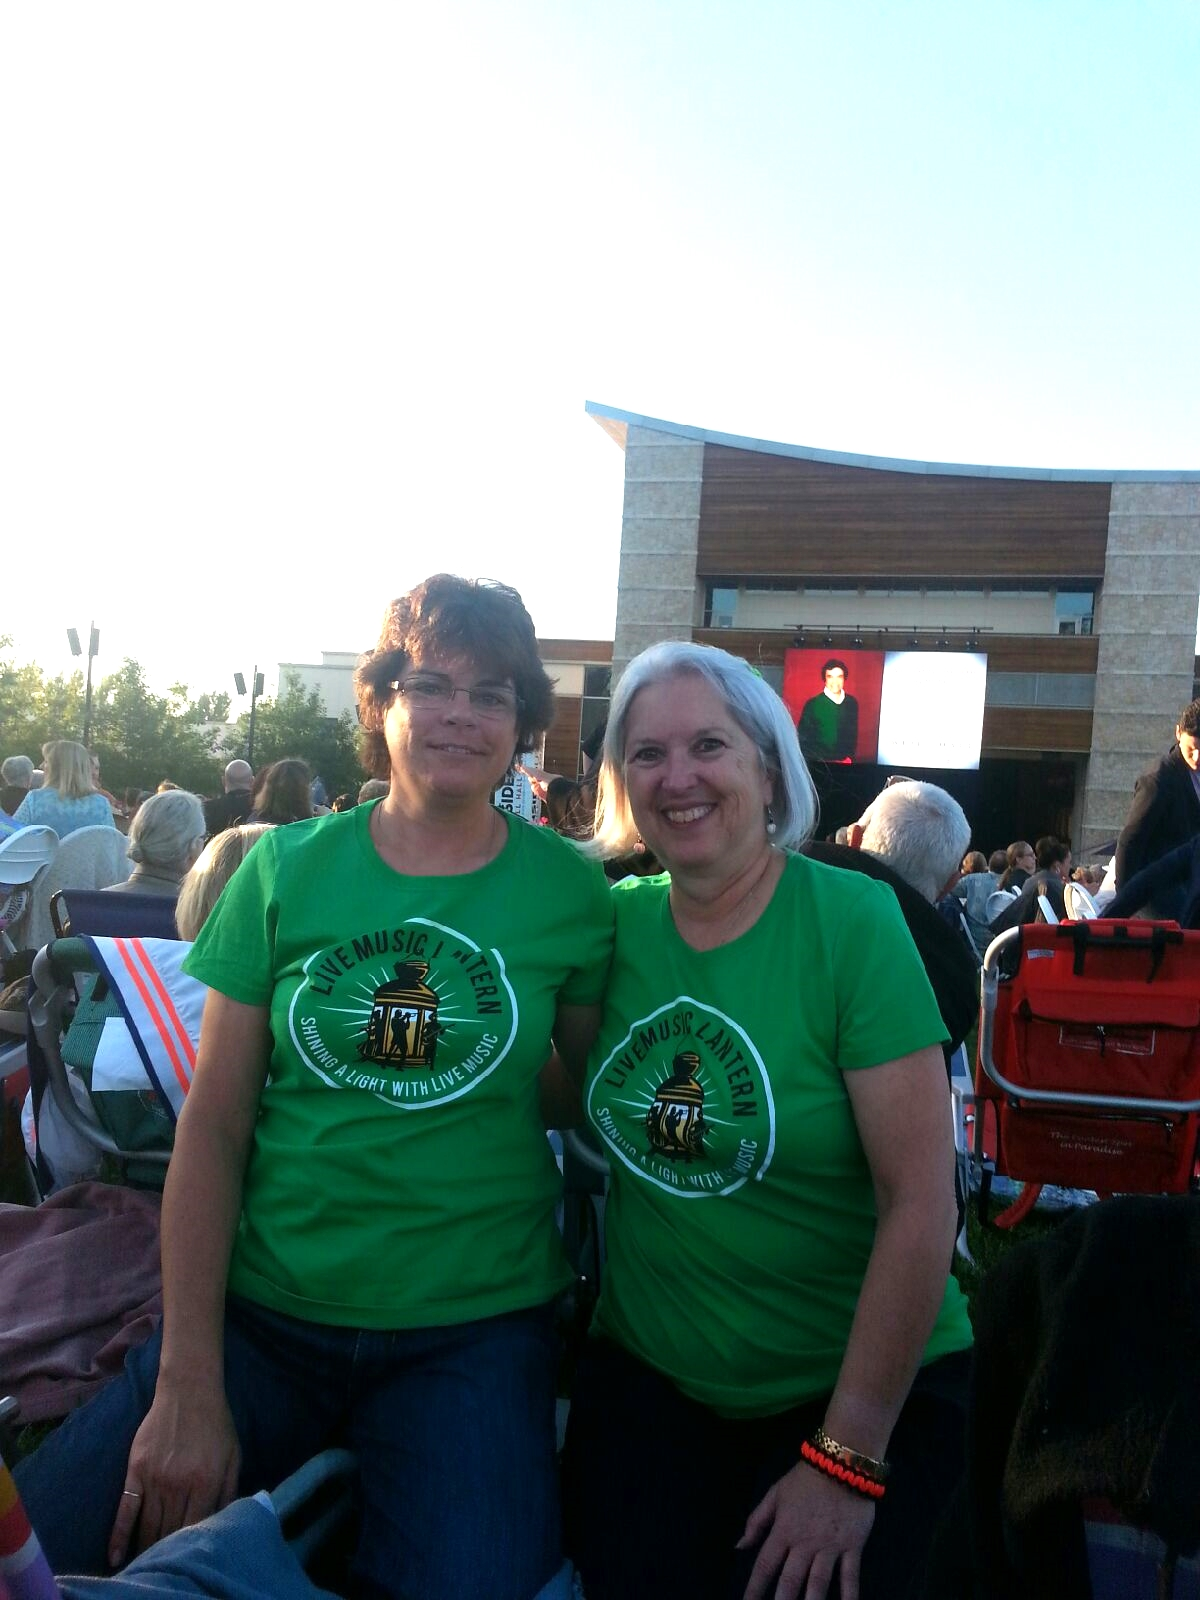 A couple Live Music Lantern recipients enjoying themselves at the Tony Bennett concert at the Green Music Center.